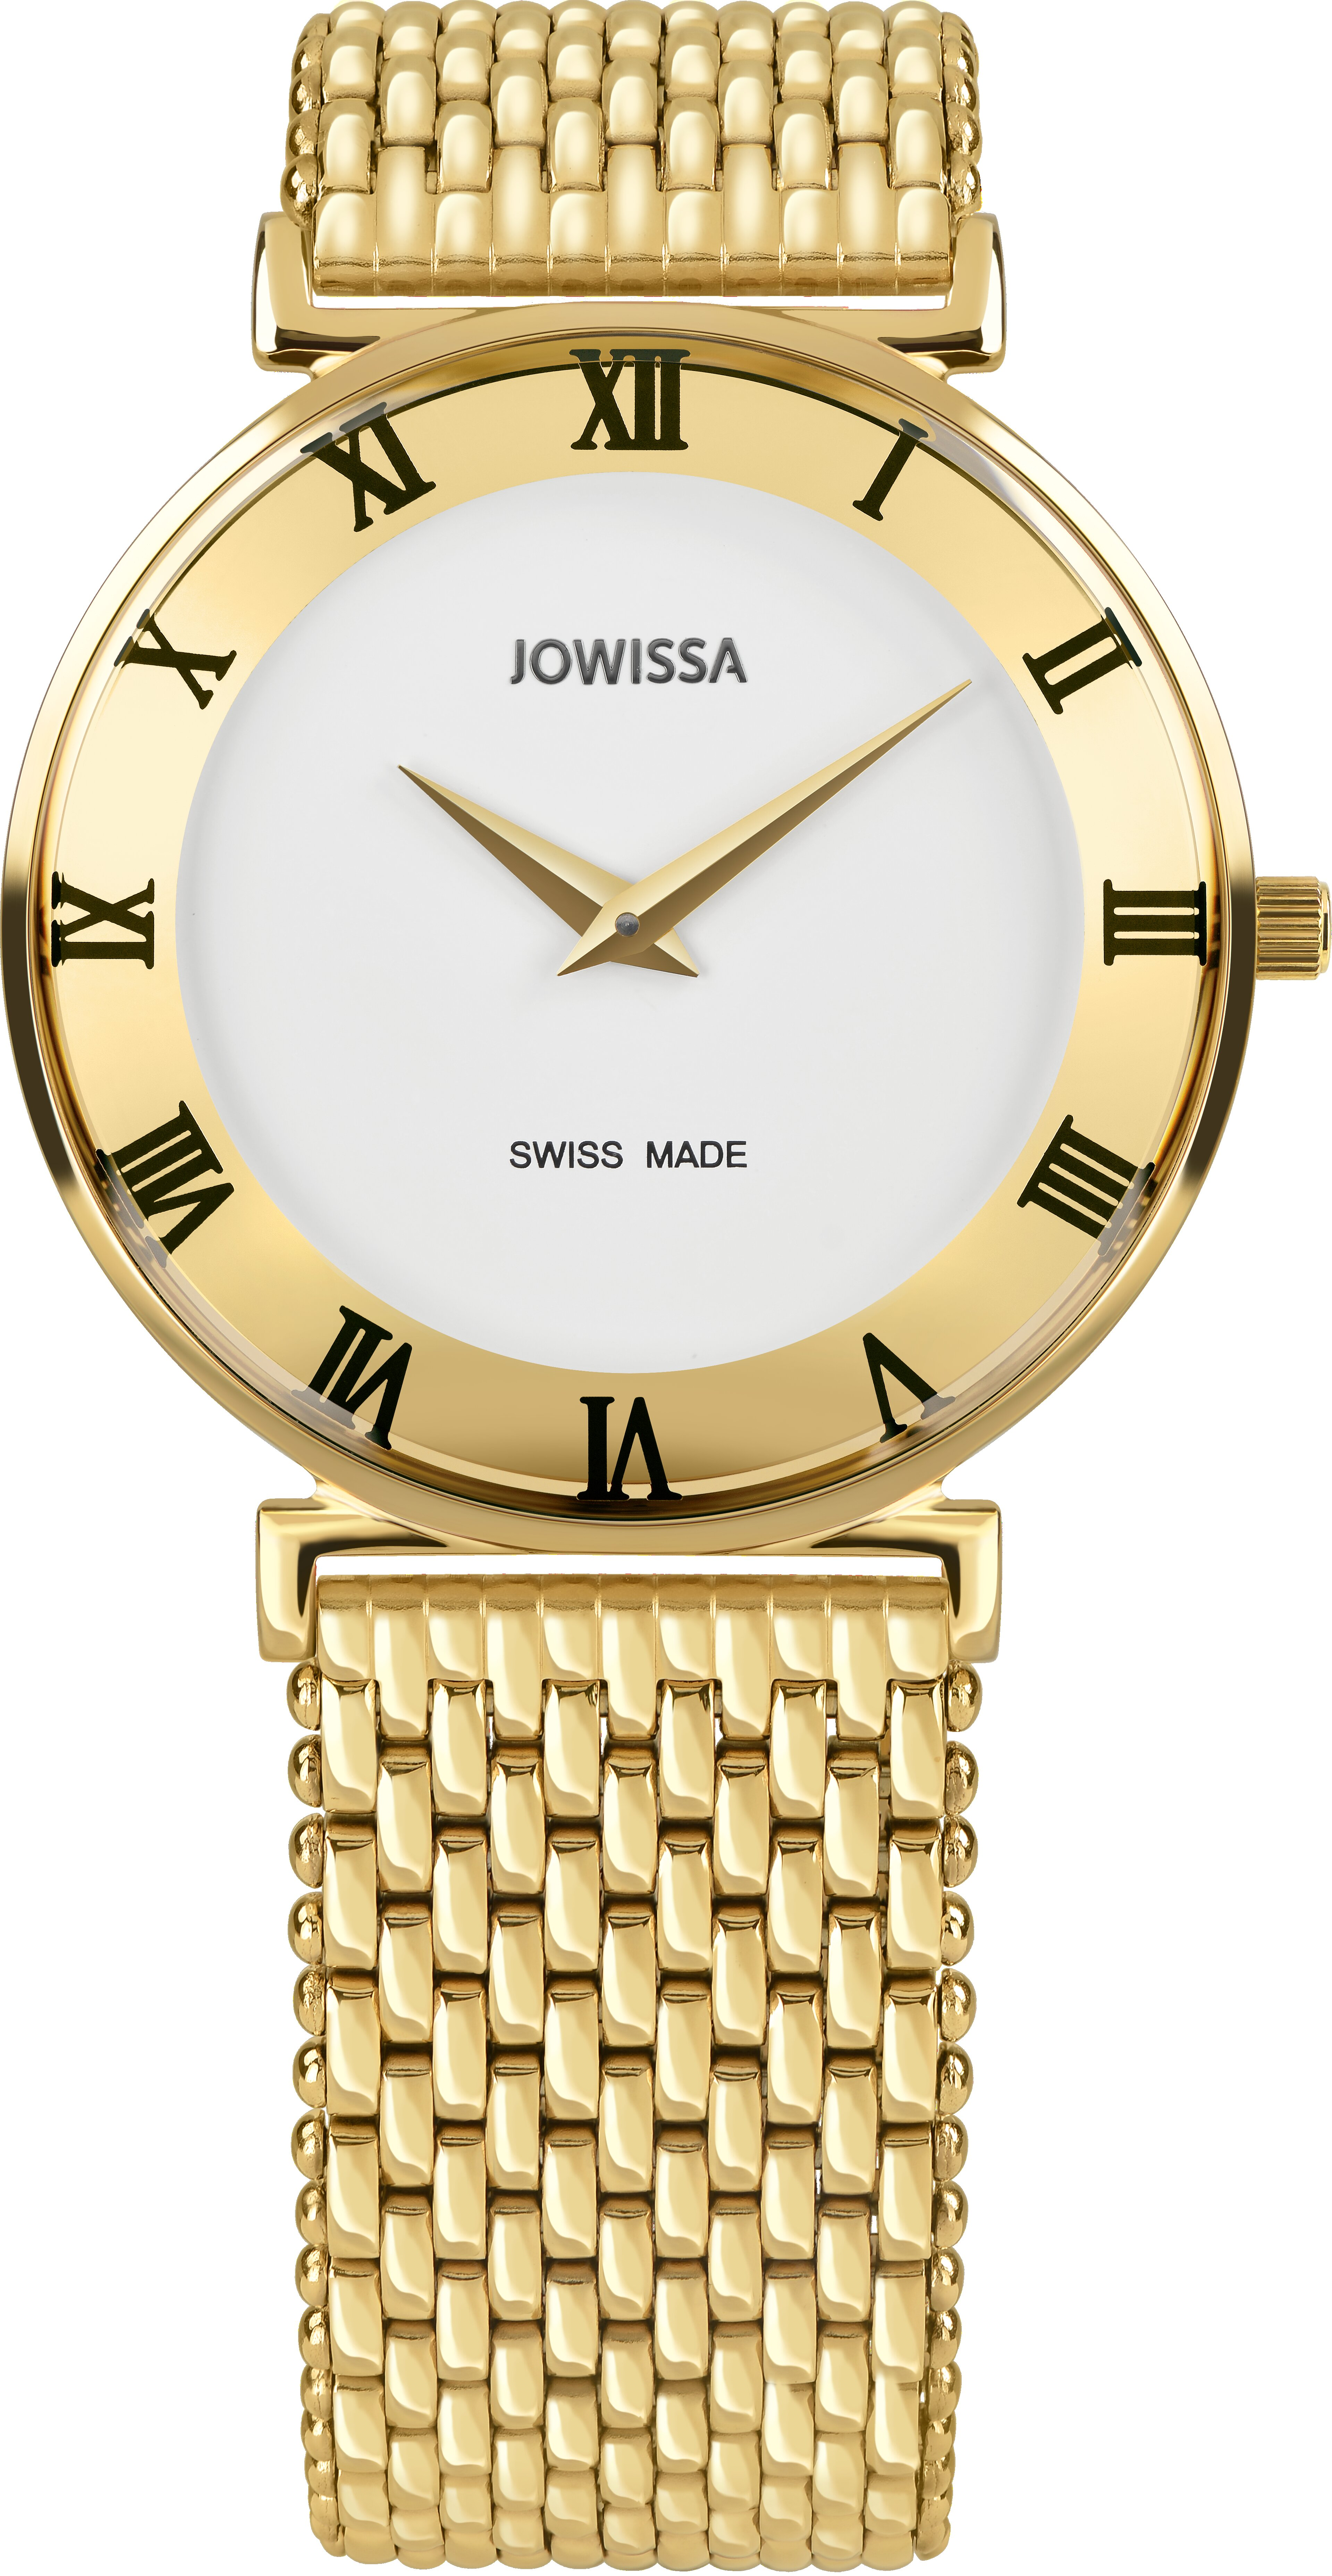 J2.295.L Roma CRingView Jowissa Watch.jpg